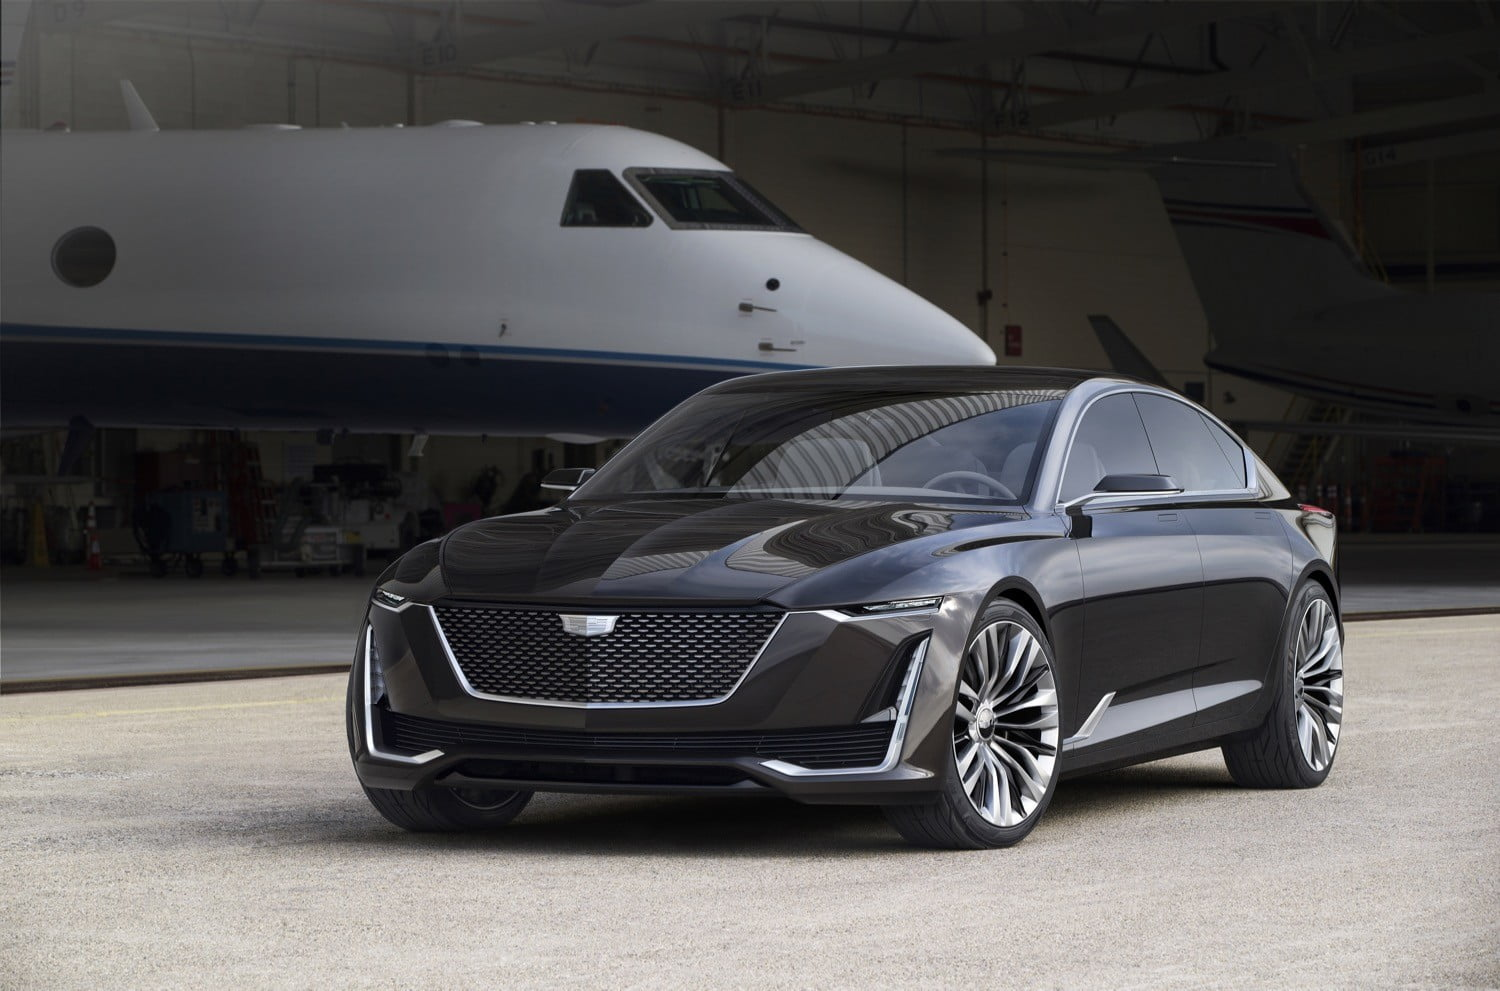 cadillac escale concept slated for production in 2021 report says rh digitaltrends com